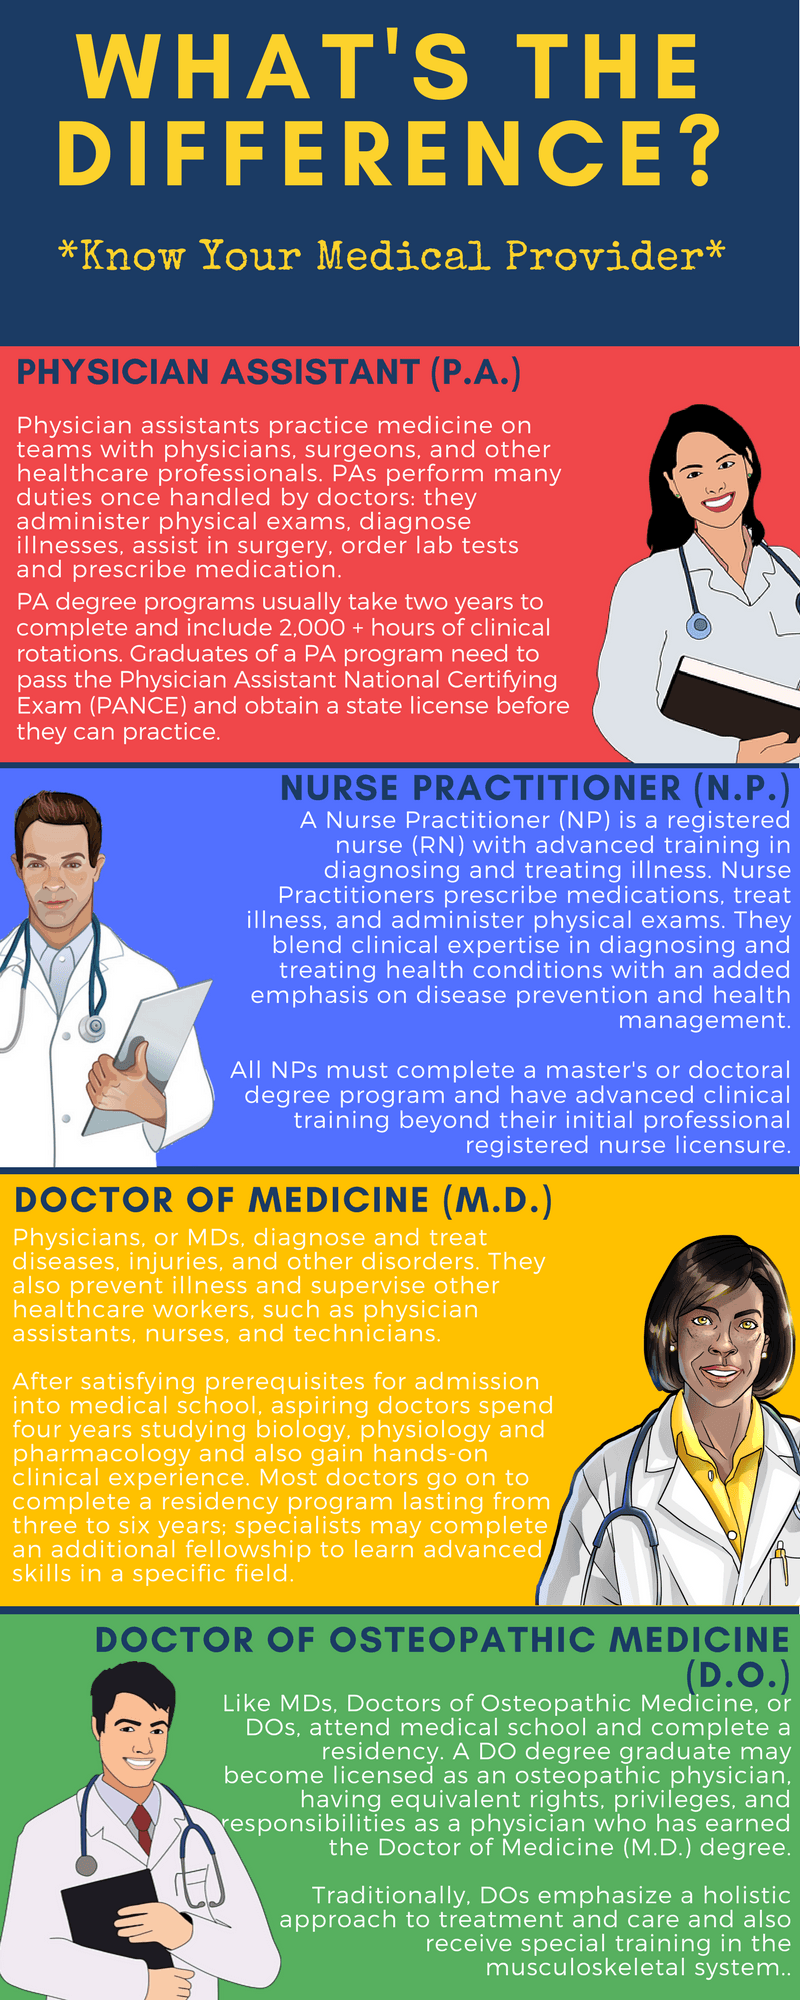 What's the Difference Between a Nurse Practitioner